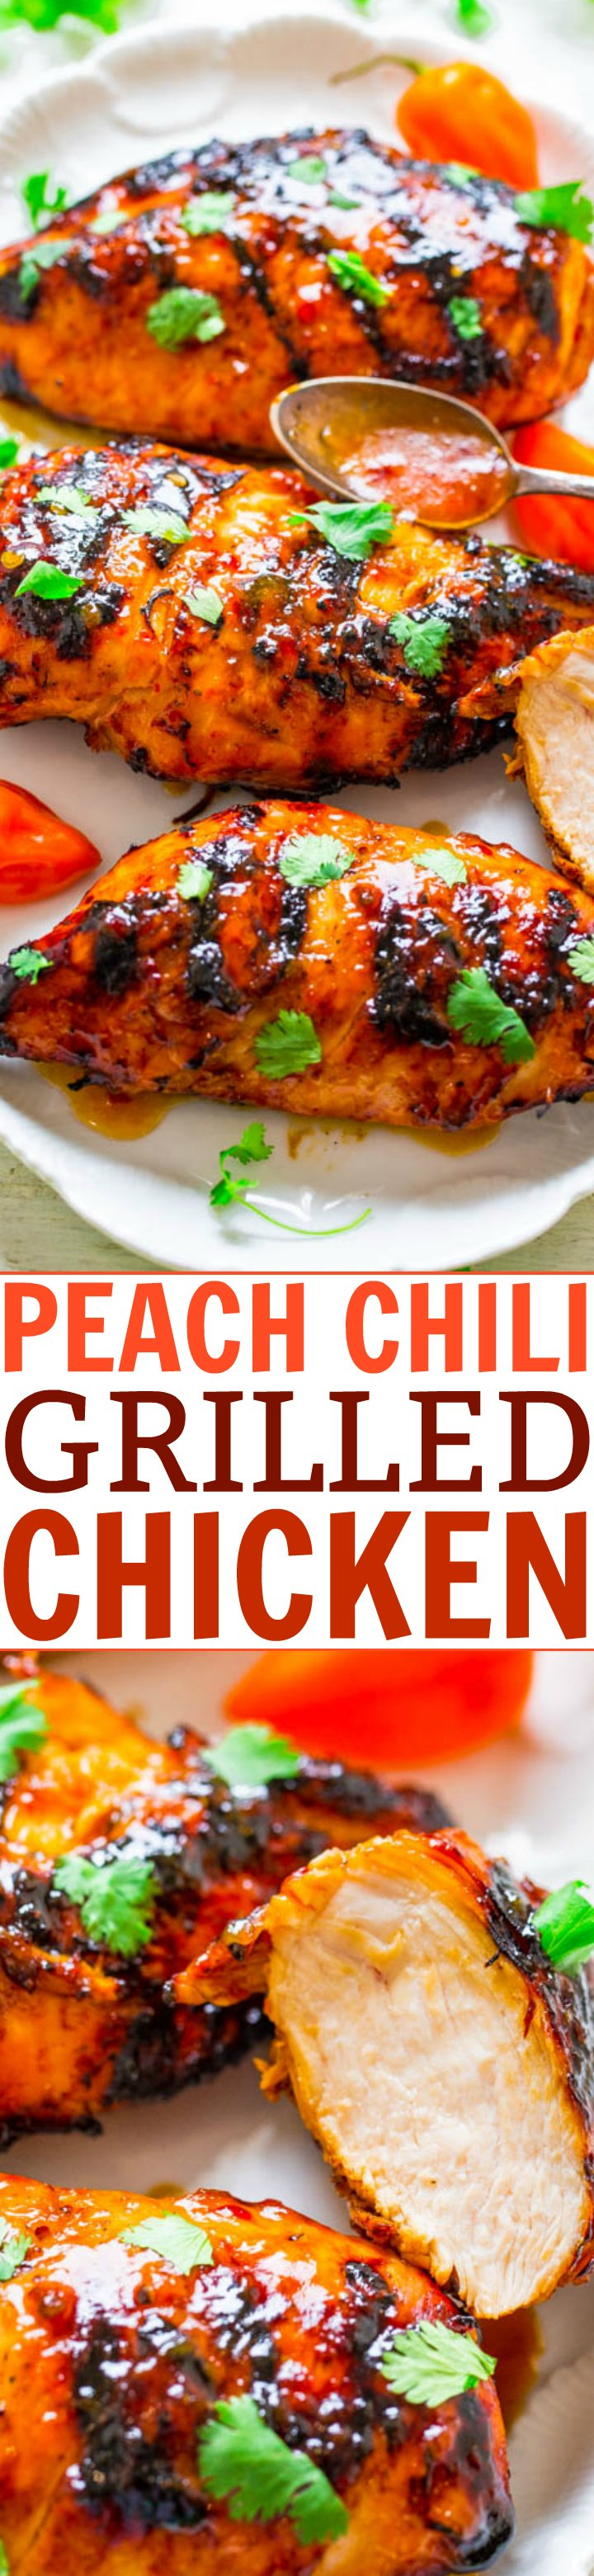 Peach Chili Grilled Chicken - Tender, juicy, and full of FLAVOR from the sweet peach preserves and chili garlic sauce!! The perfect contrast! EASY, healthy, ready in 10 minutes, zero cleanup, perfect for backyard barbecues or easy weeknight dinners!!